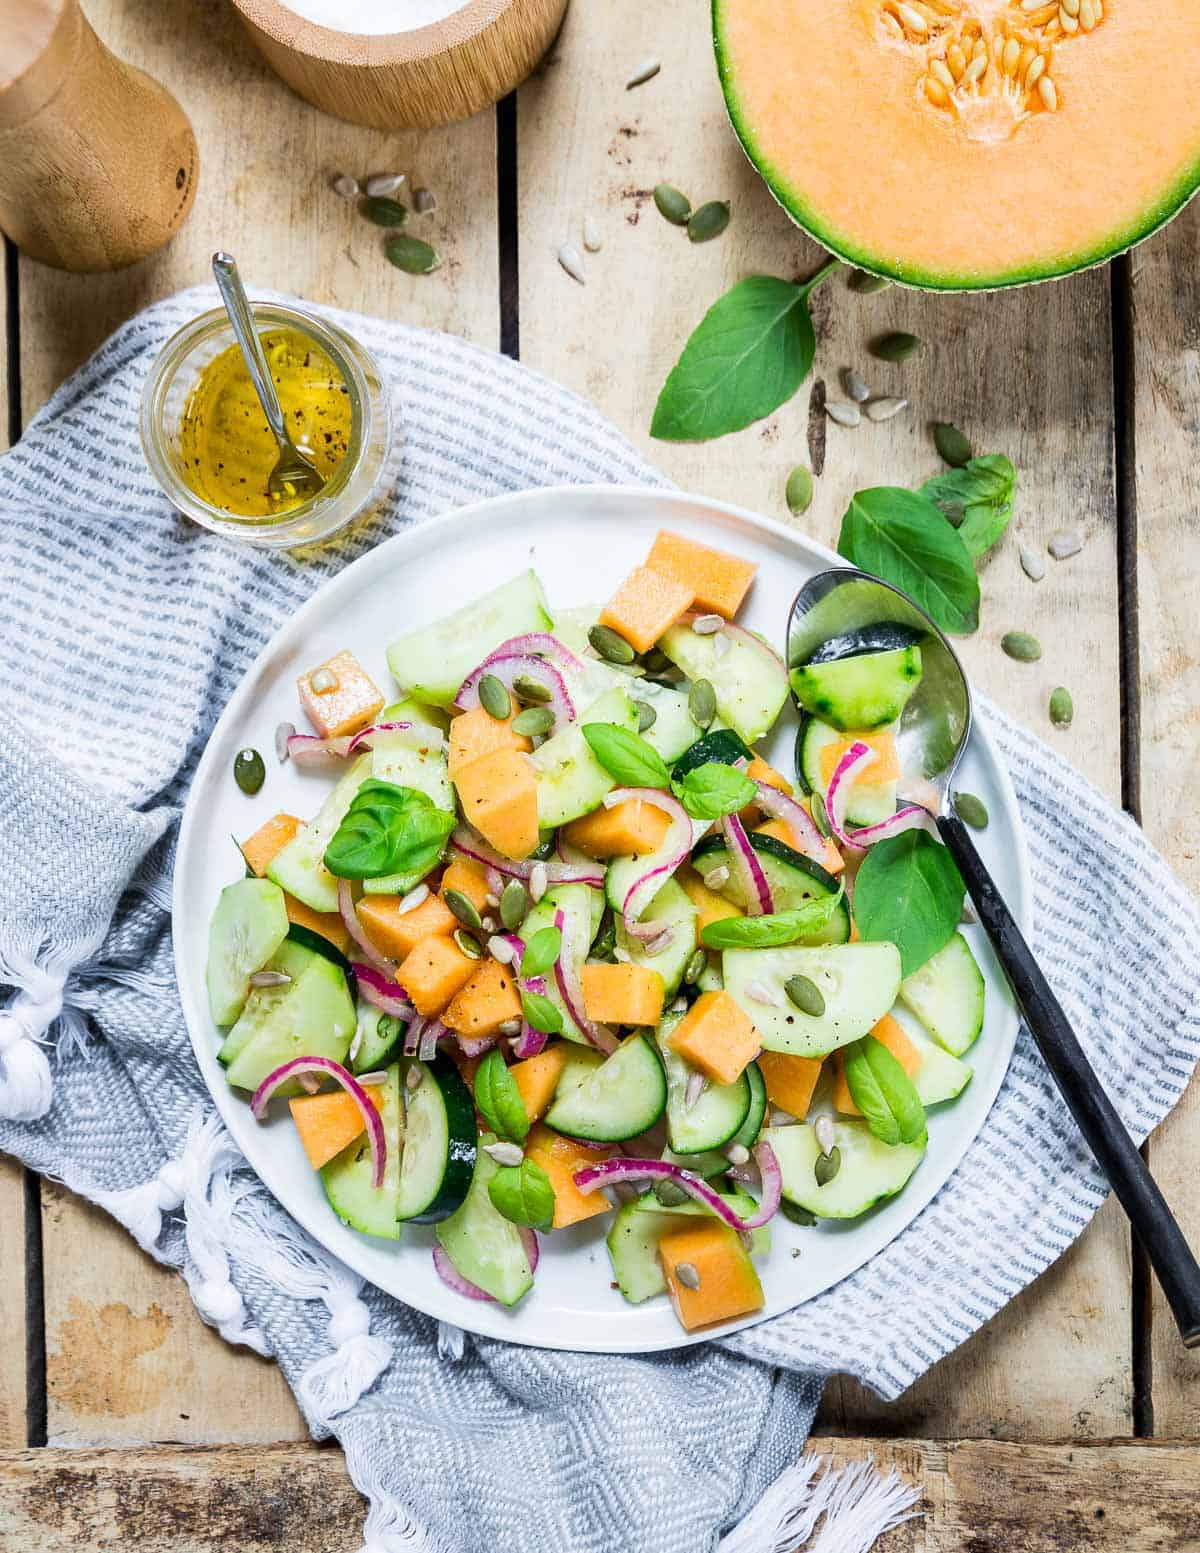 Cantaloupe cucumber salad is a refreshing summer side dish perfect with any grilled meat.